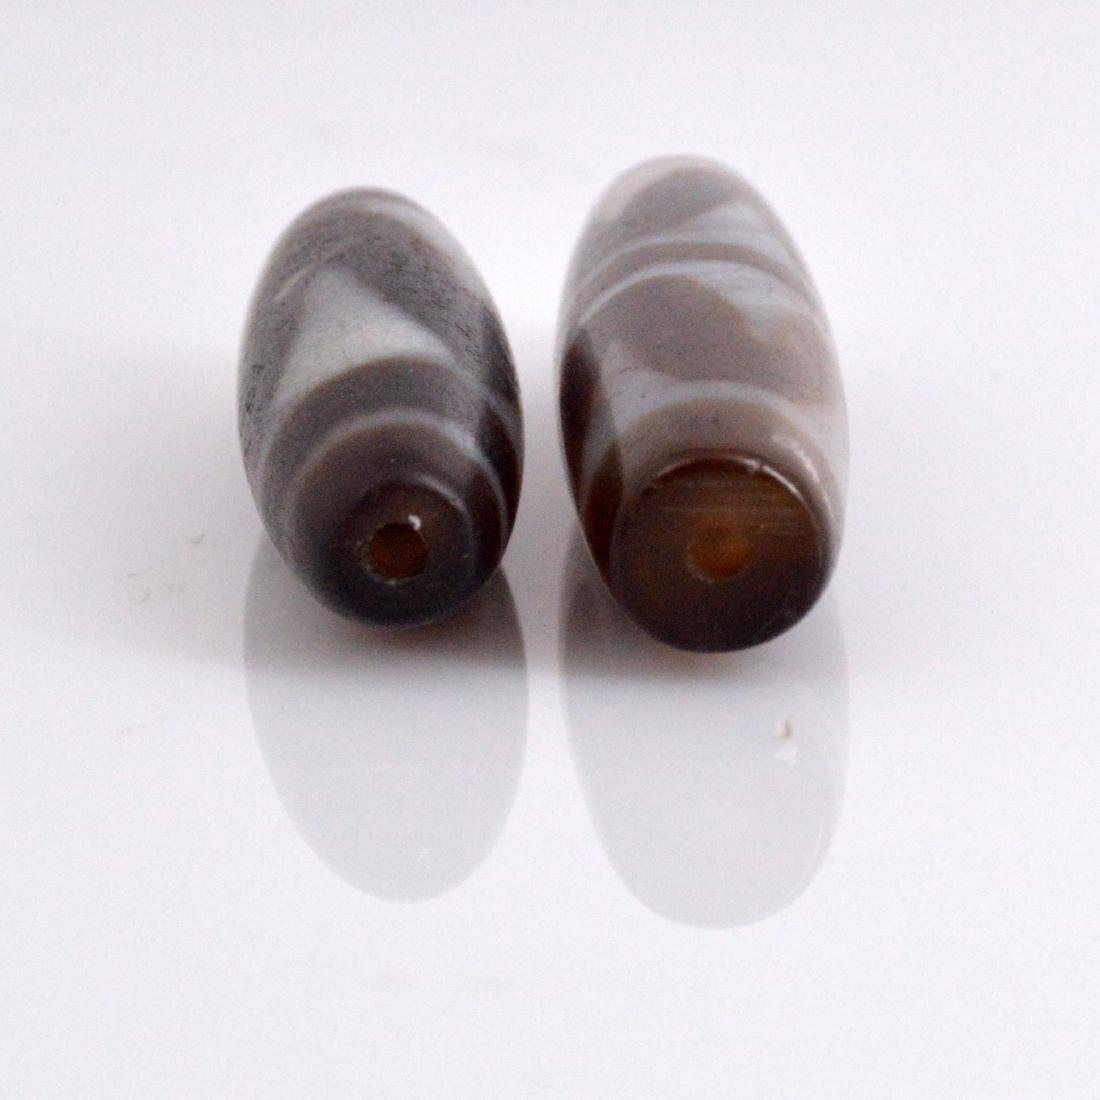 Tiger Tooth Dzi Bead Pair - 4